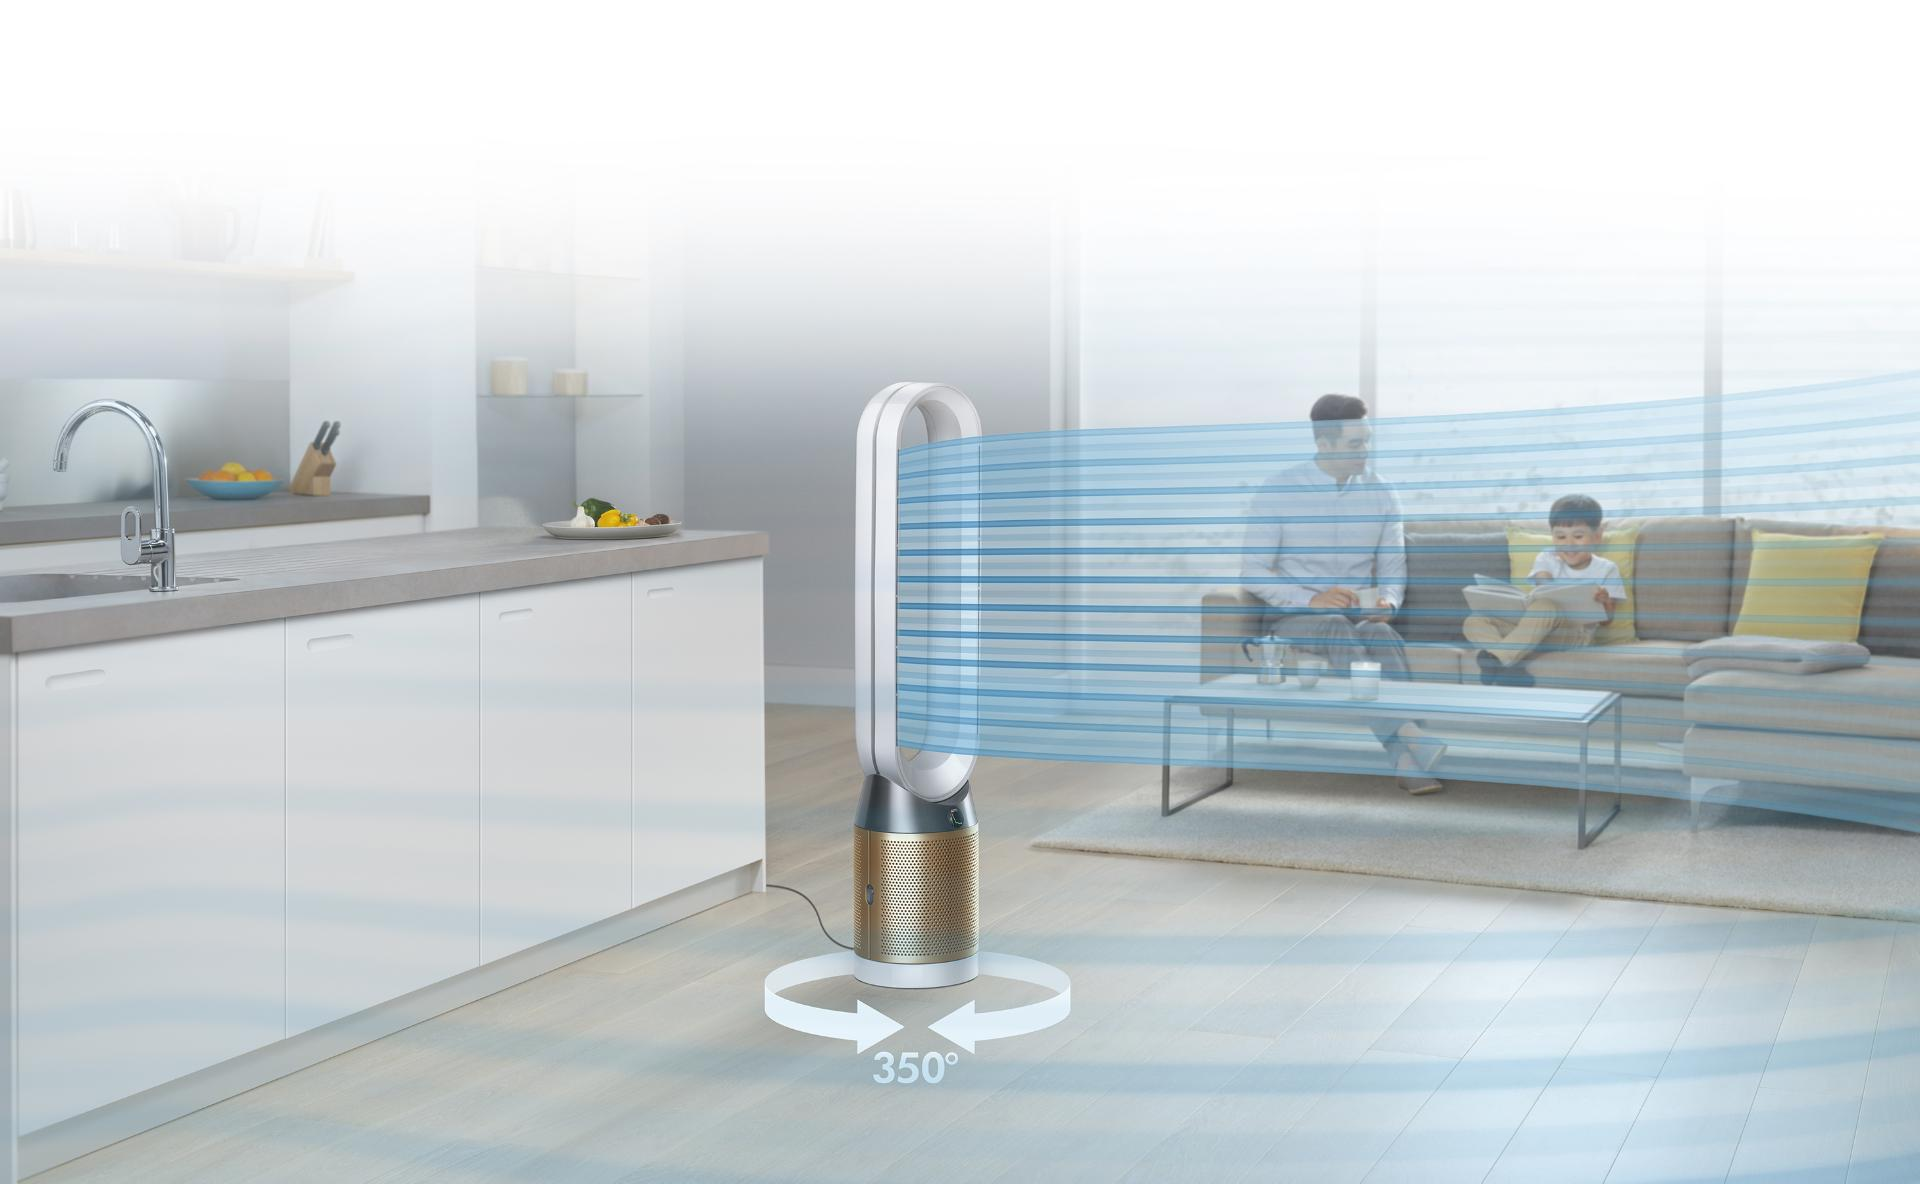 The Dyson Pure Cool Cryptomic projecting cooling purified air throughout a large open lounge and kitchen